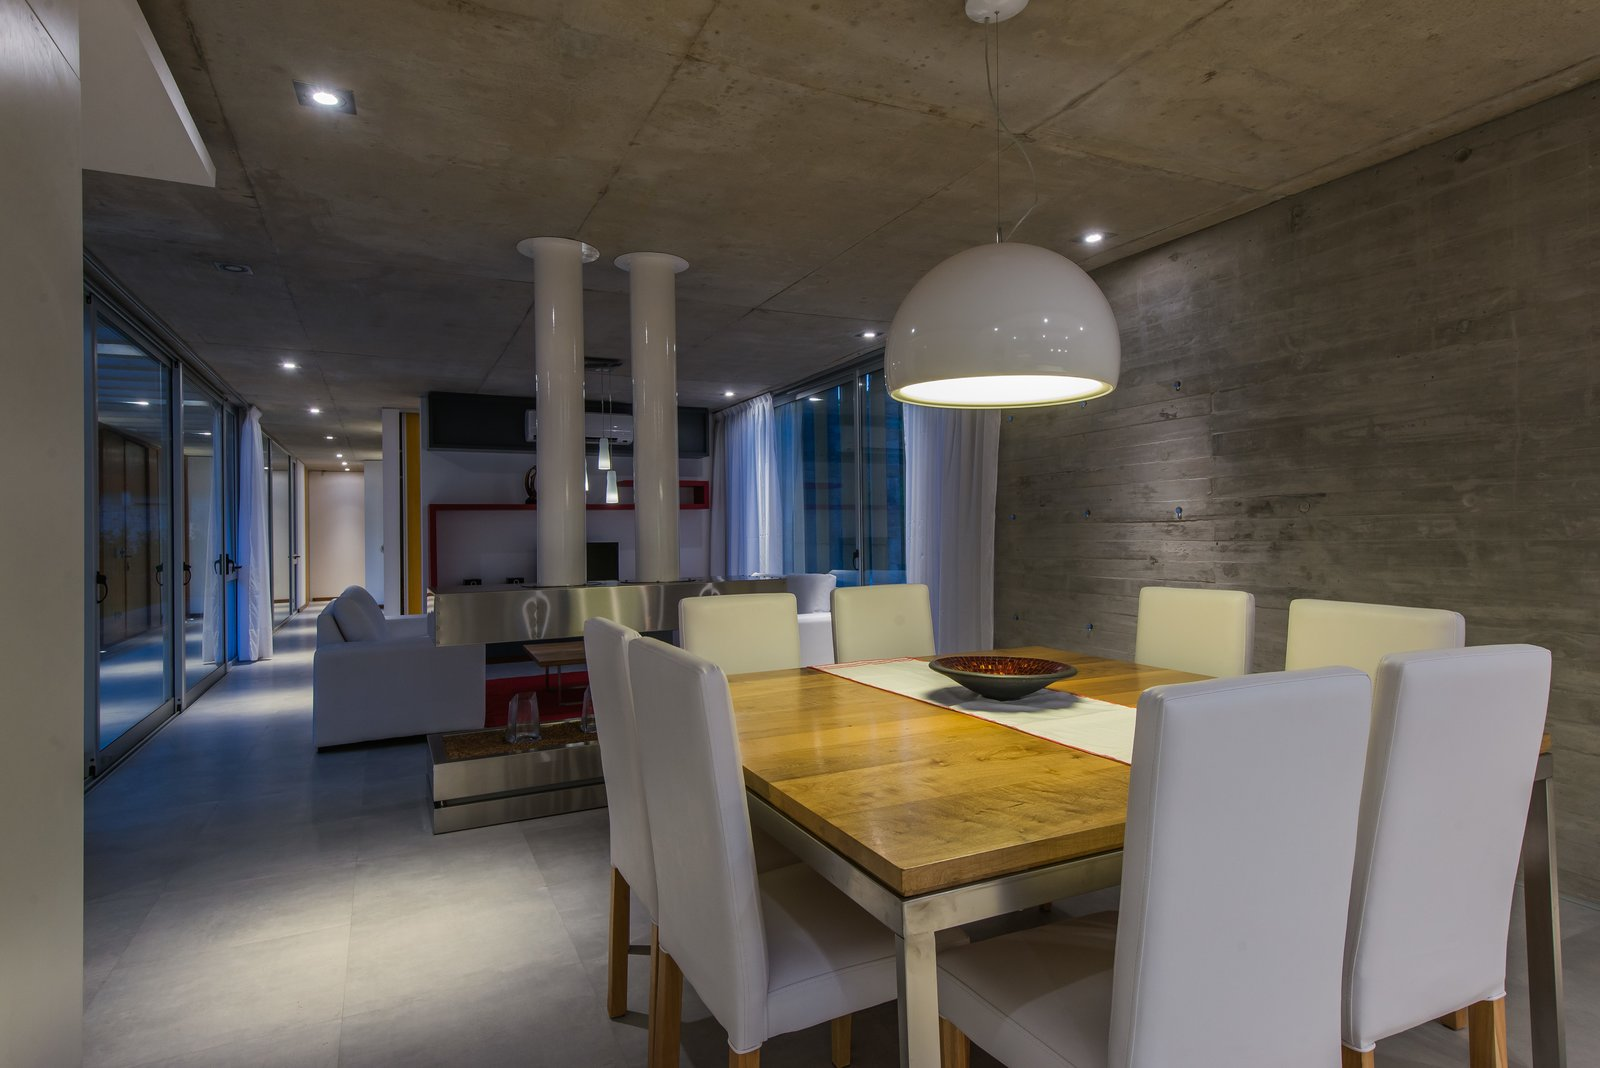 Dining Room, Chair, Ceiling Lighting, Table Lighting, Porcelain Tile Floor, Table, and Standard Layout Fireplace  Casa Batin by Estudio Galera